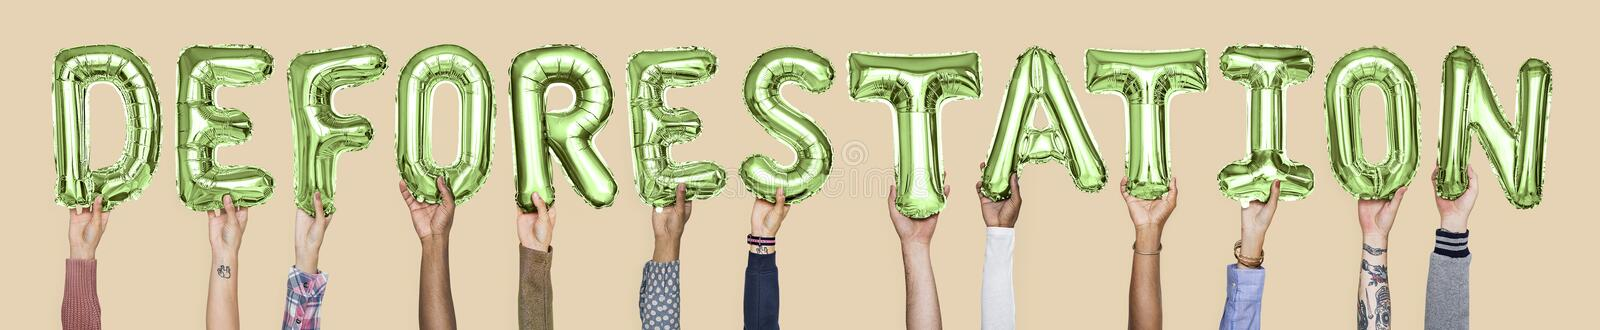 Hands holding deforestation word in balloon letters stock images